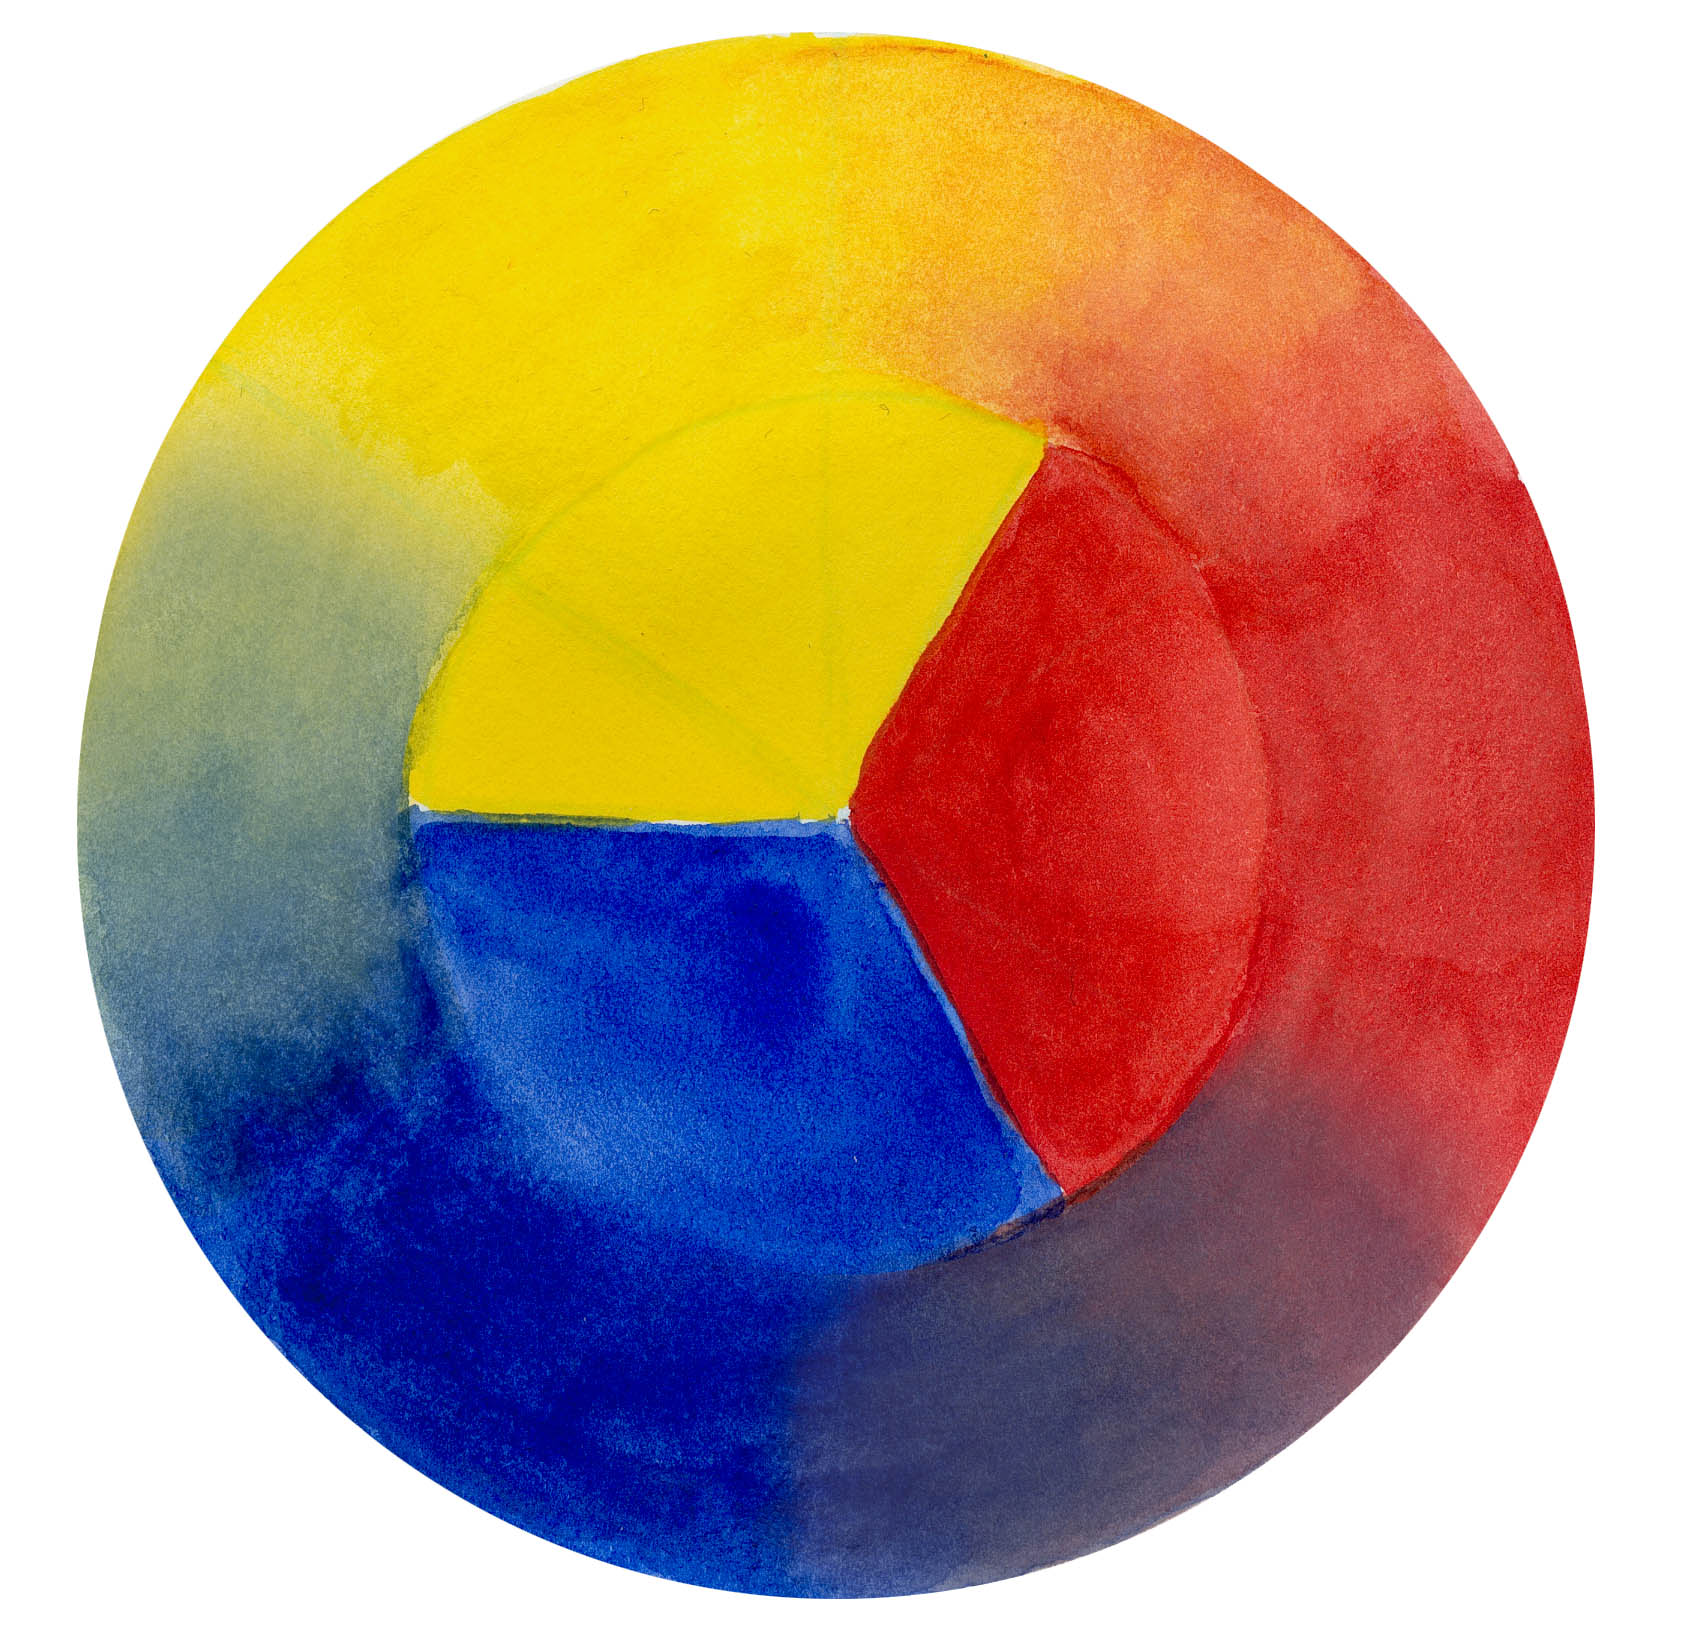 red yellow blue color wheel john muir laws. Black Bedroom Furniture Sets. Home Design Ideas